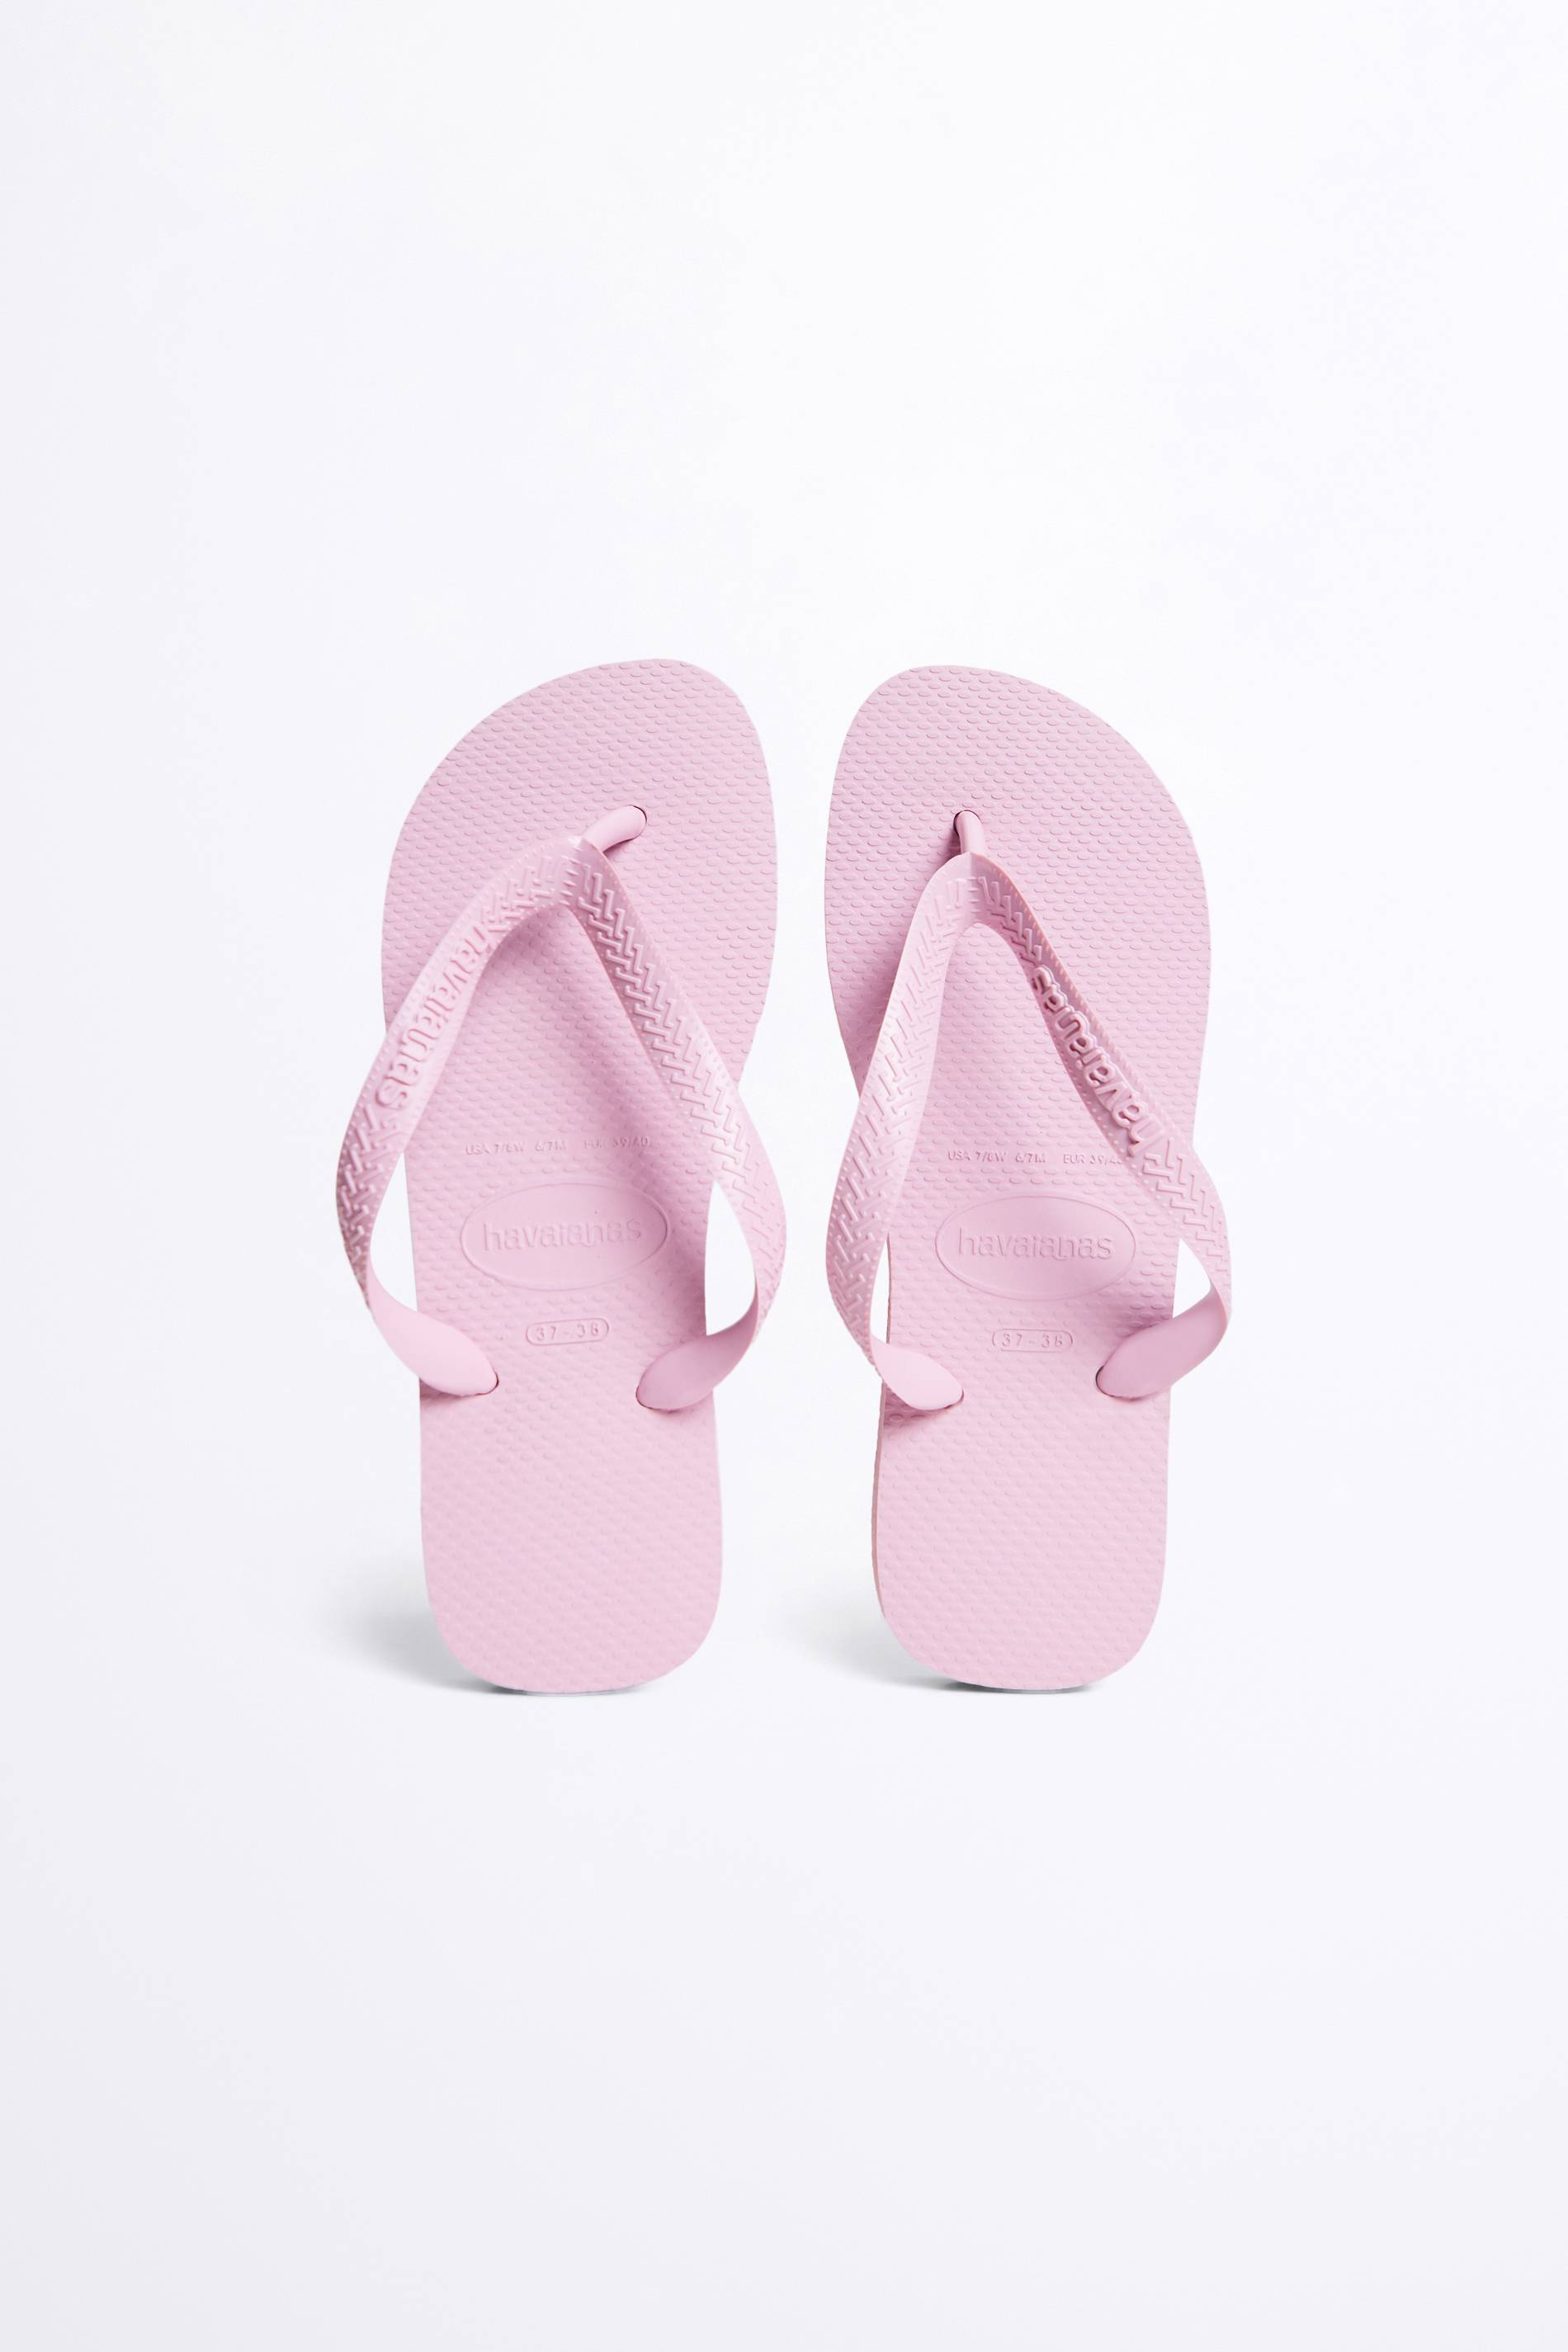 Gina Tricot Havaianas top flip flops